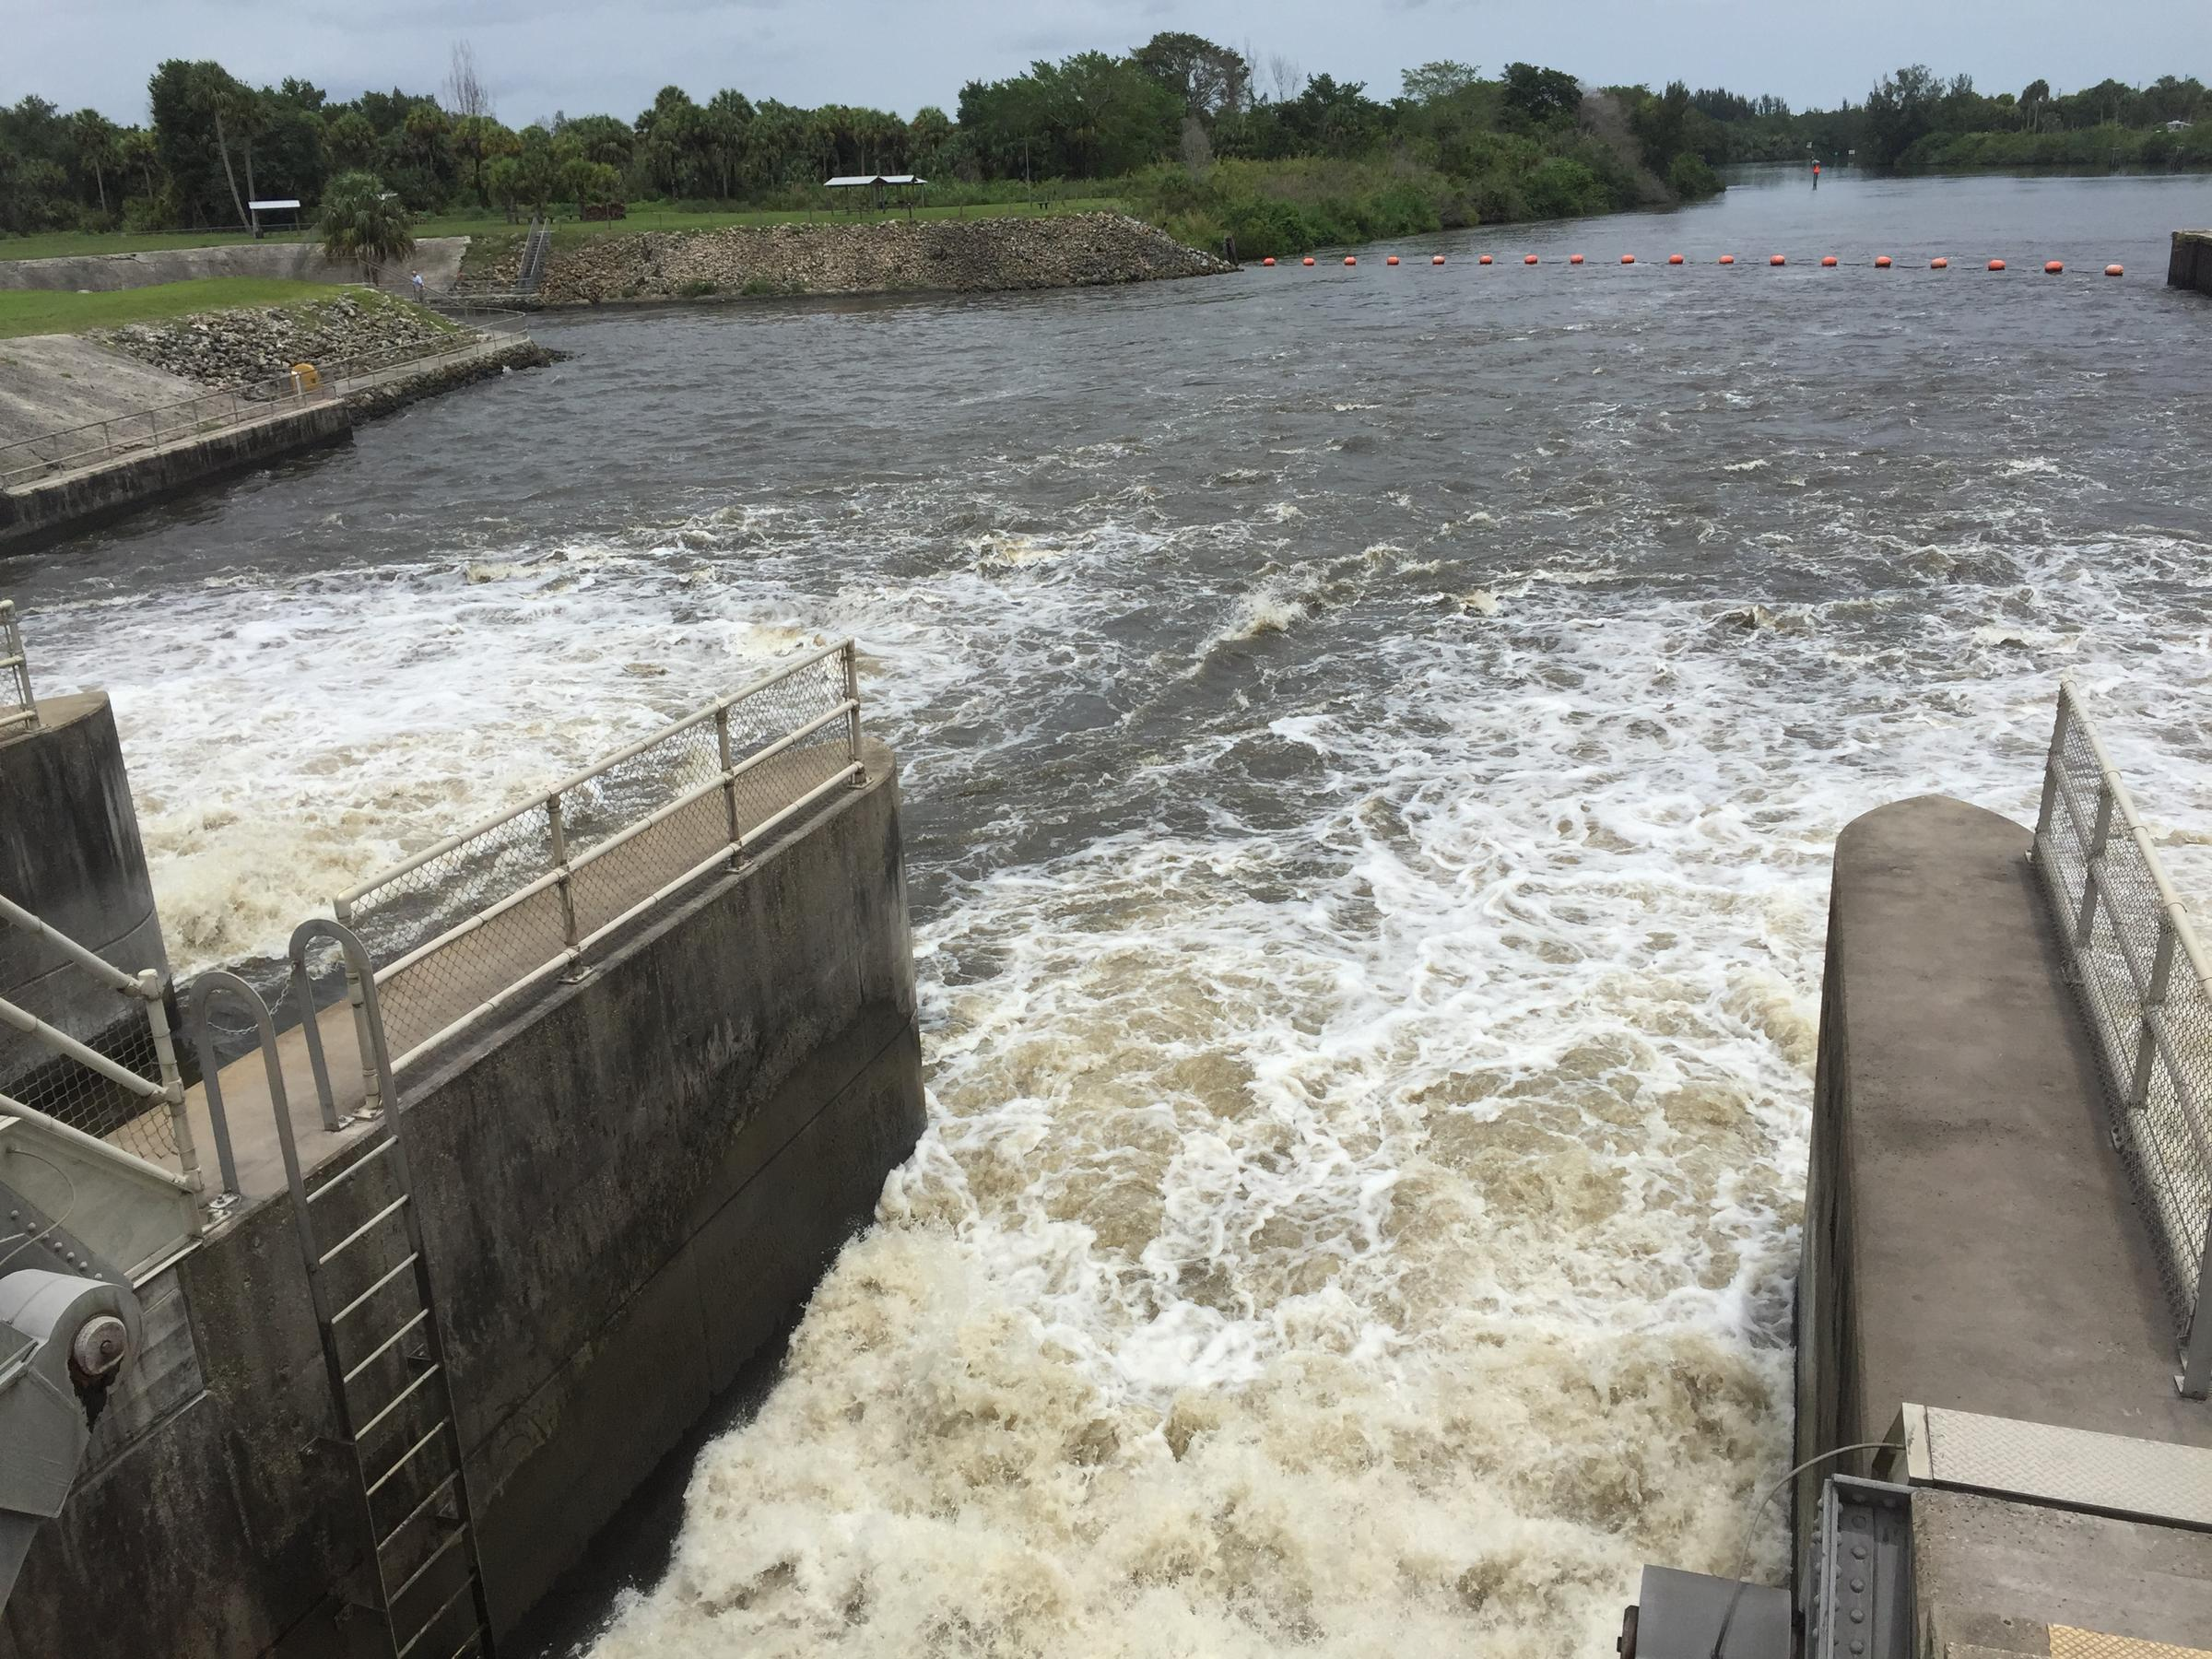 Currently 1.1 billion gallons of water per day are being released from the St. Lucie Canal that carries water from Lake Okeechobee toward the Atlantic ... & High Levels at Lake Okeechobee Leave South Florida With A Water ...